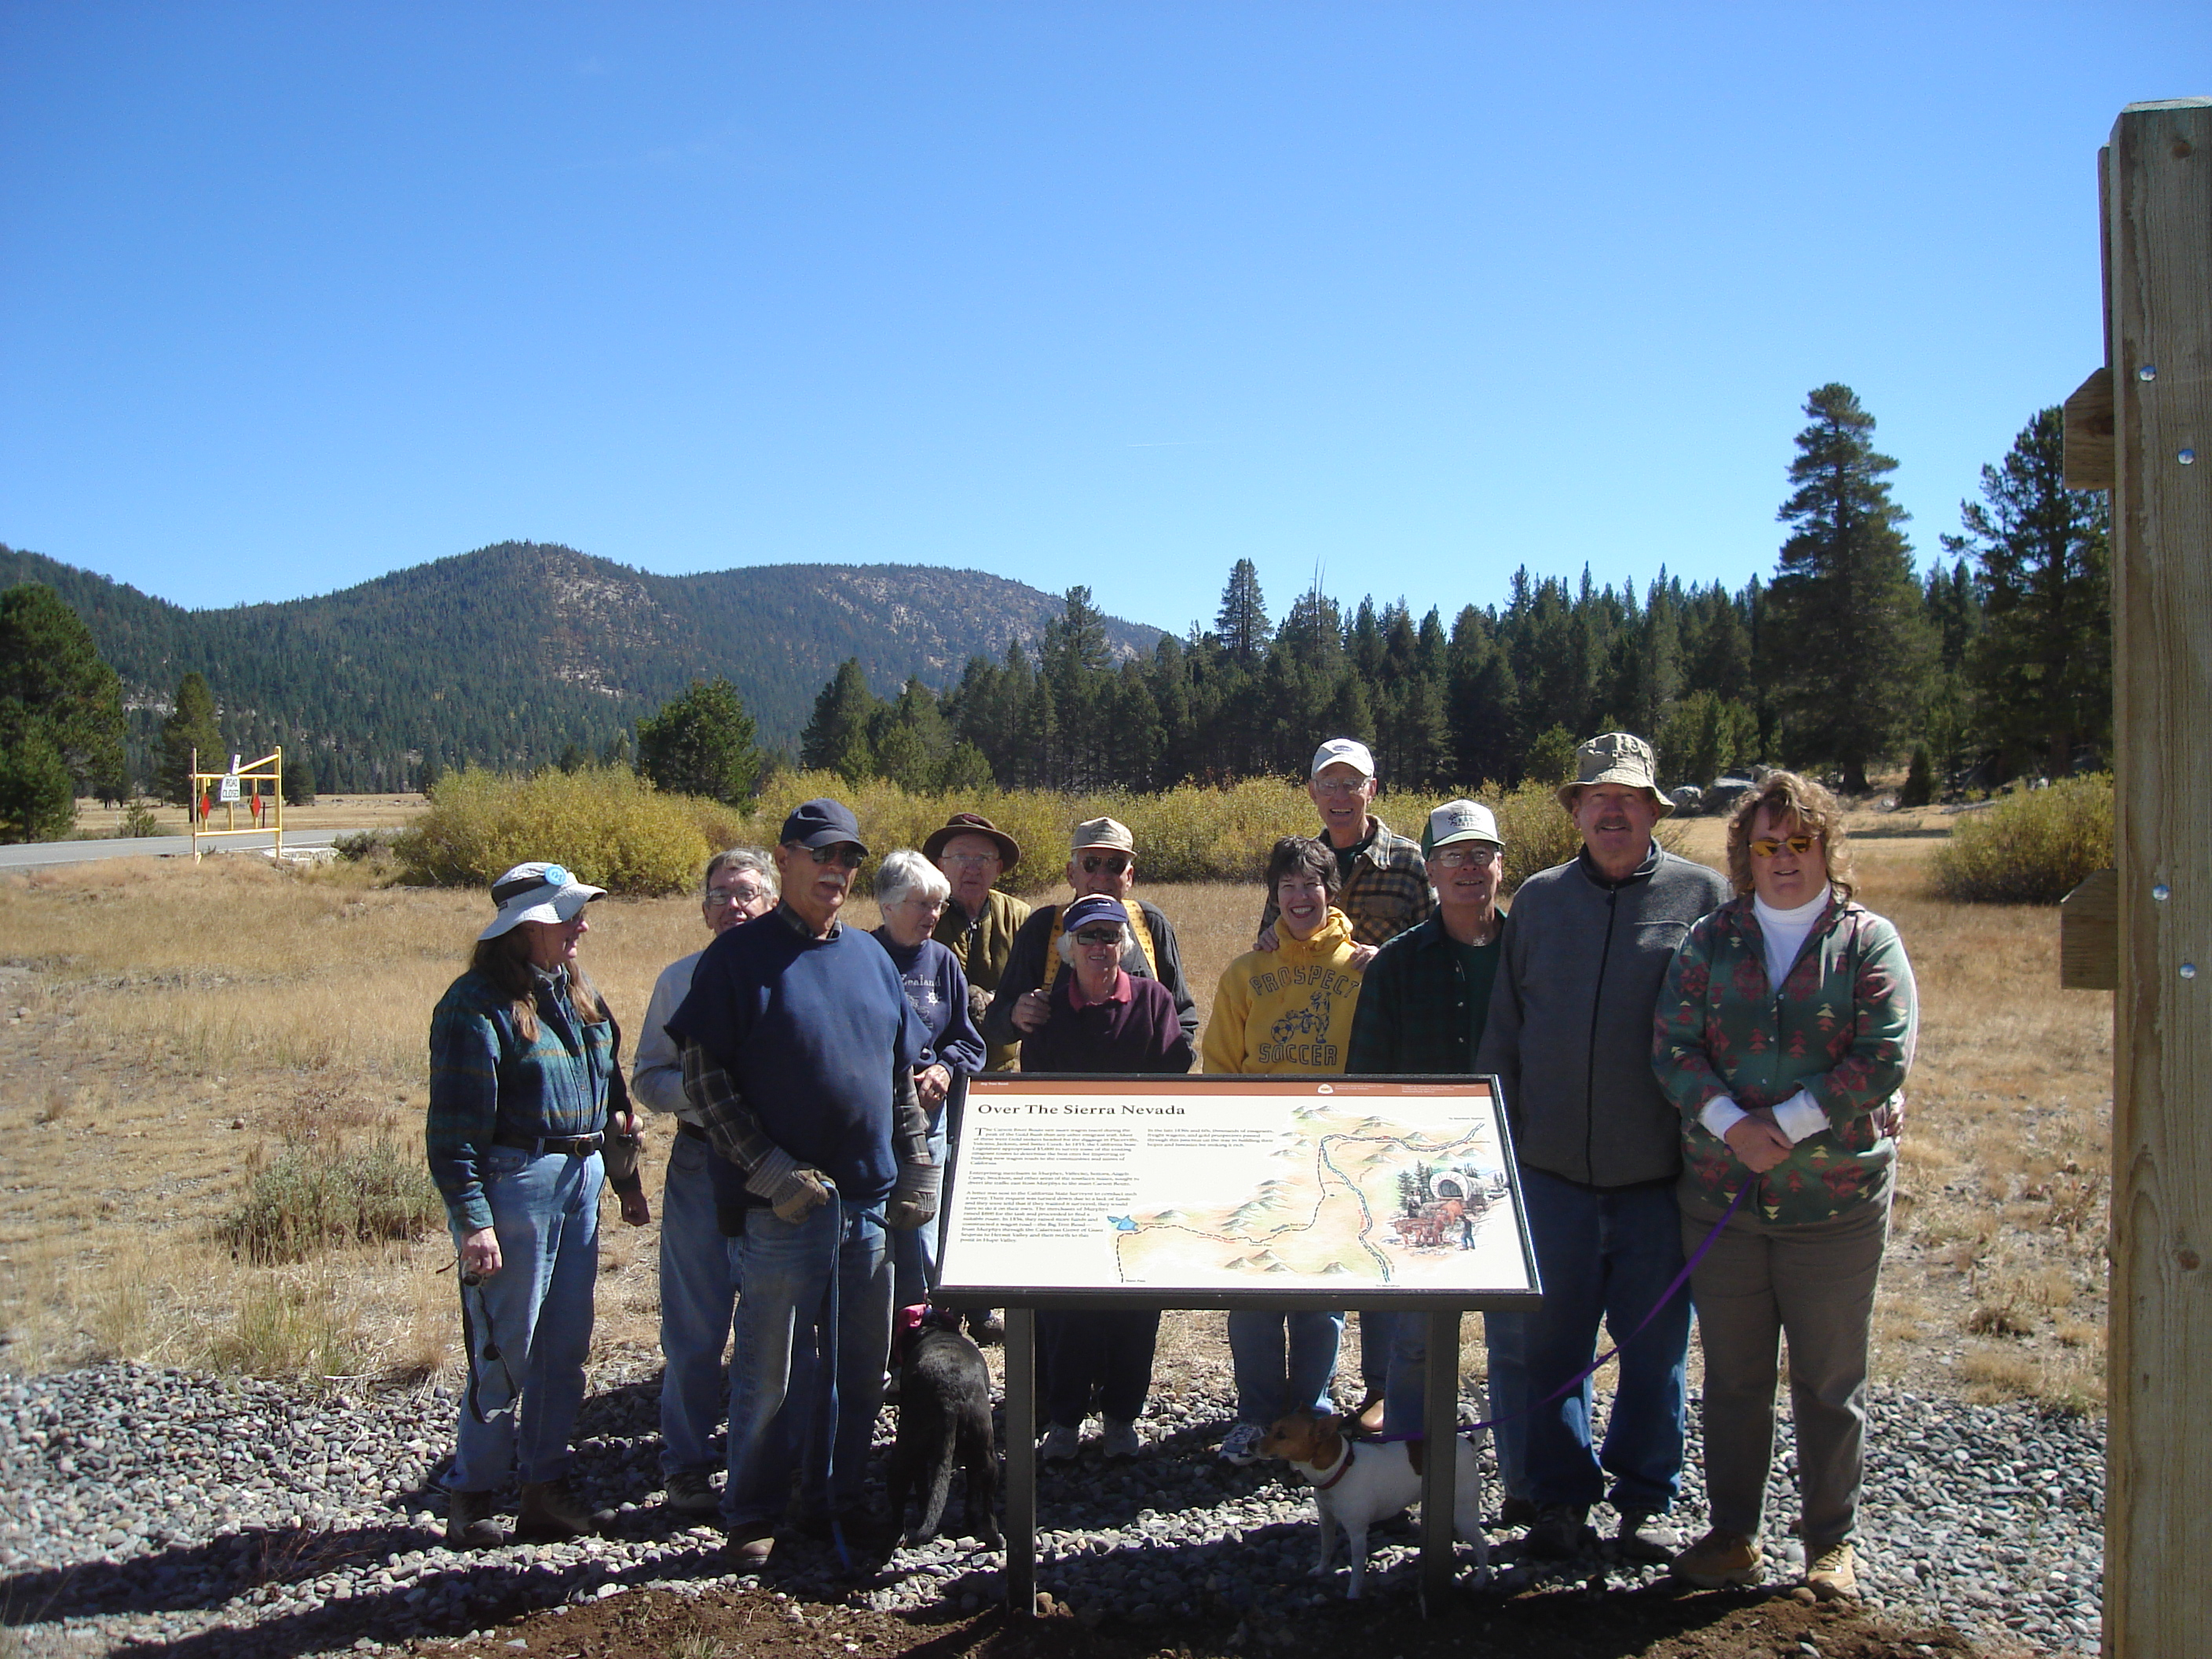 Volunteers from the California-Nevada chapter of the Oregon-California Trails Association (OCTA) complete the installation of a new interpretive exhibit.